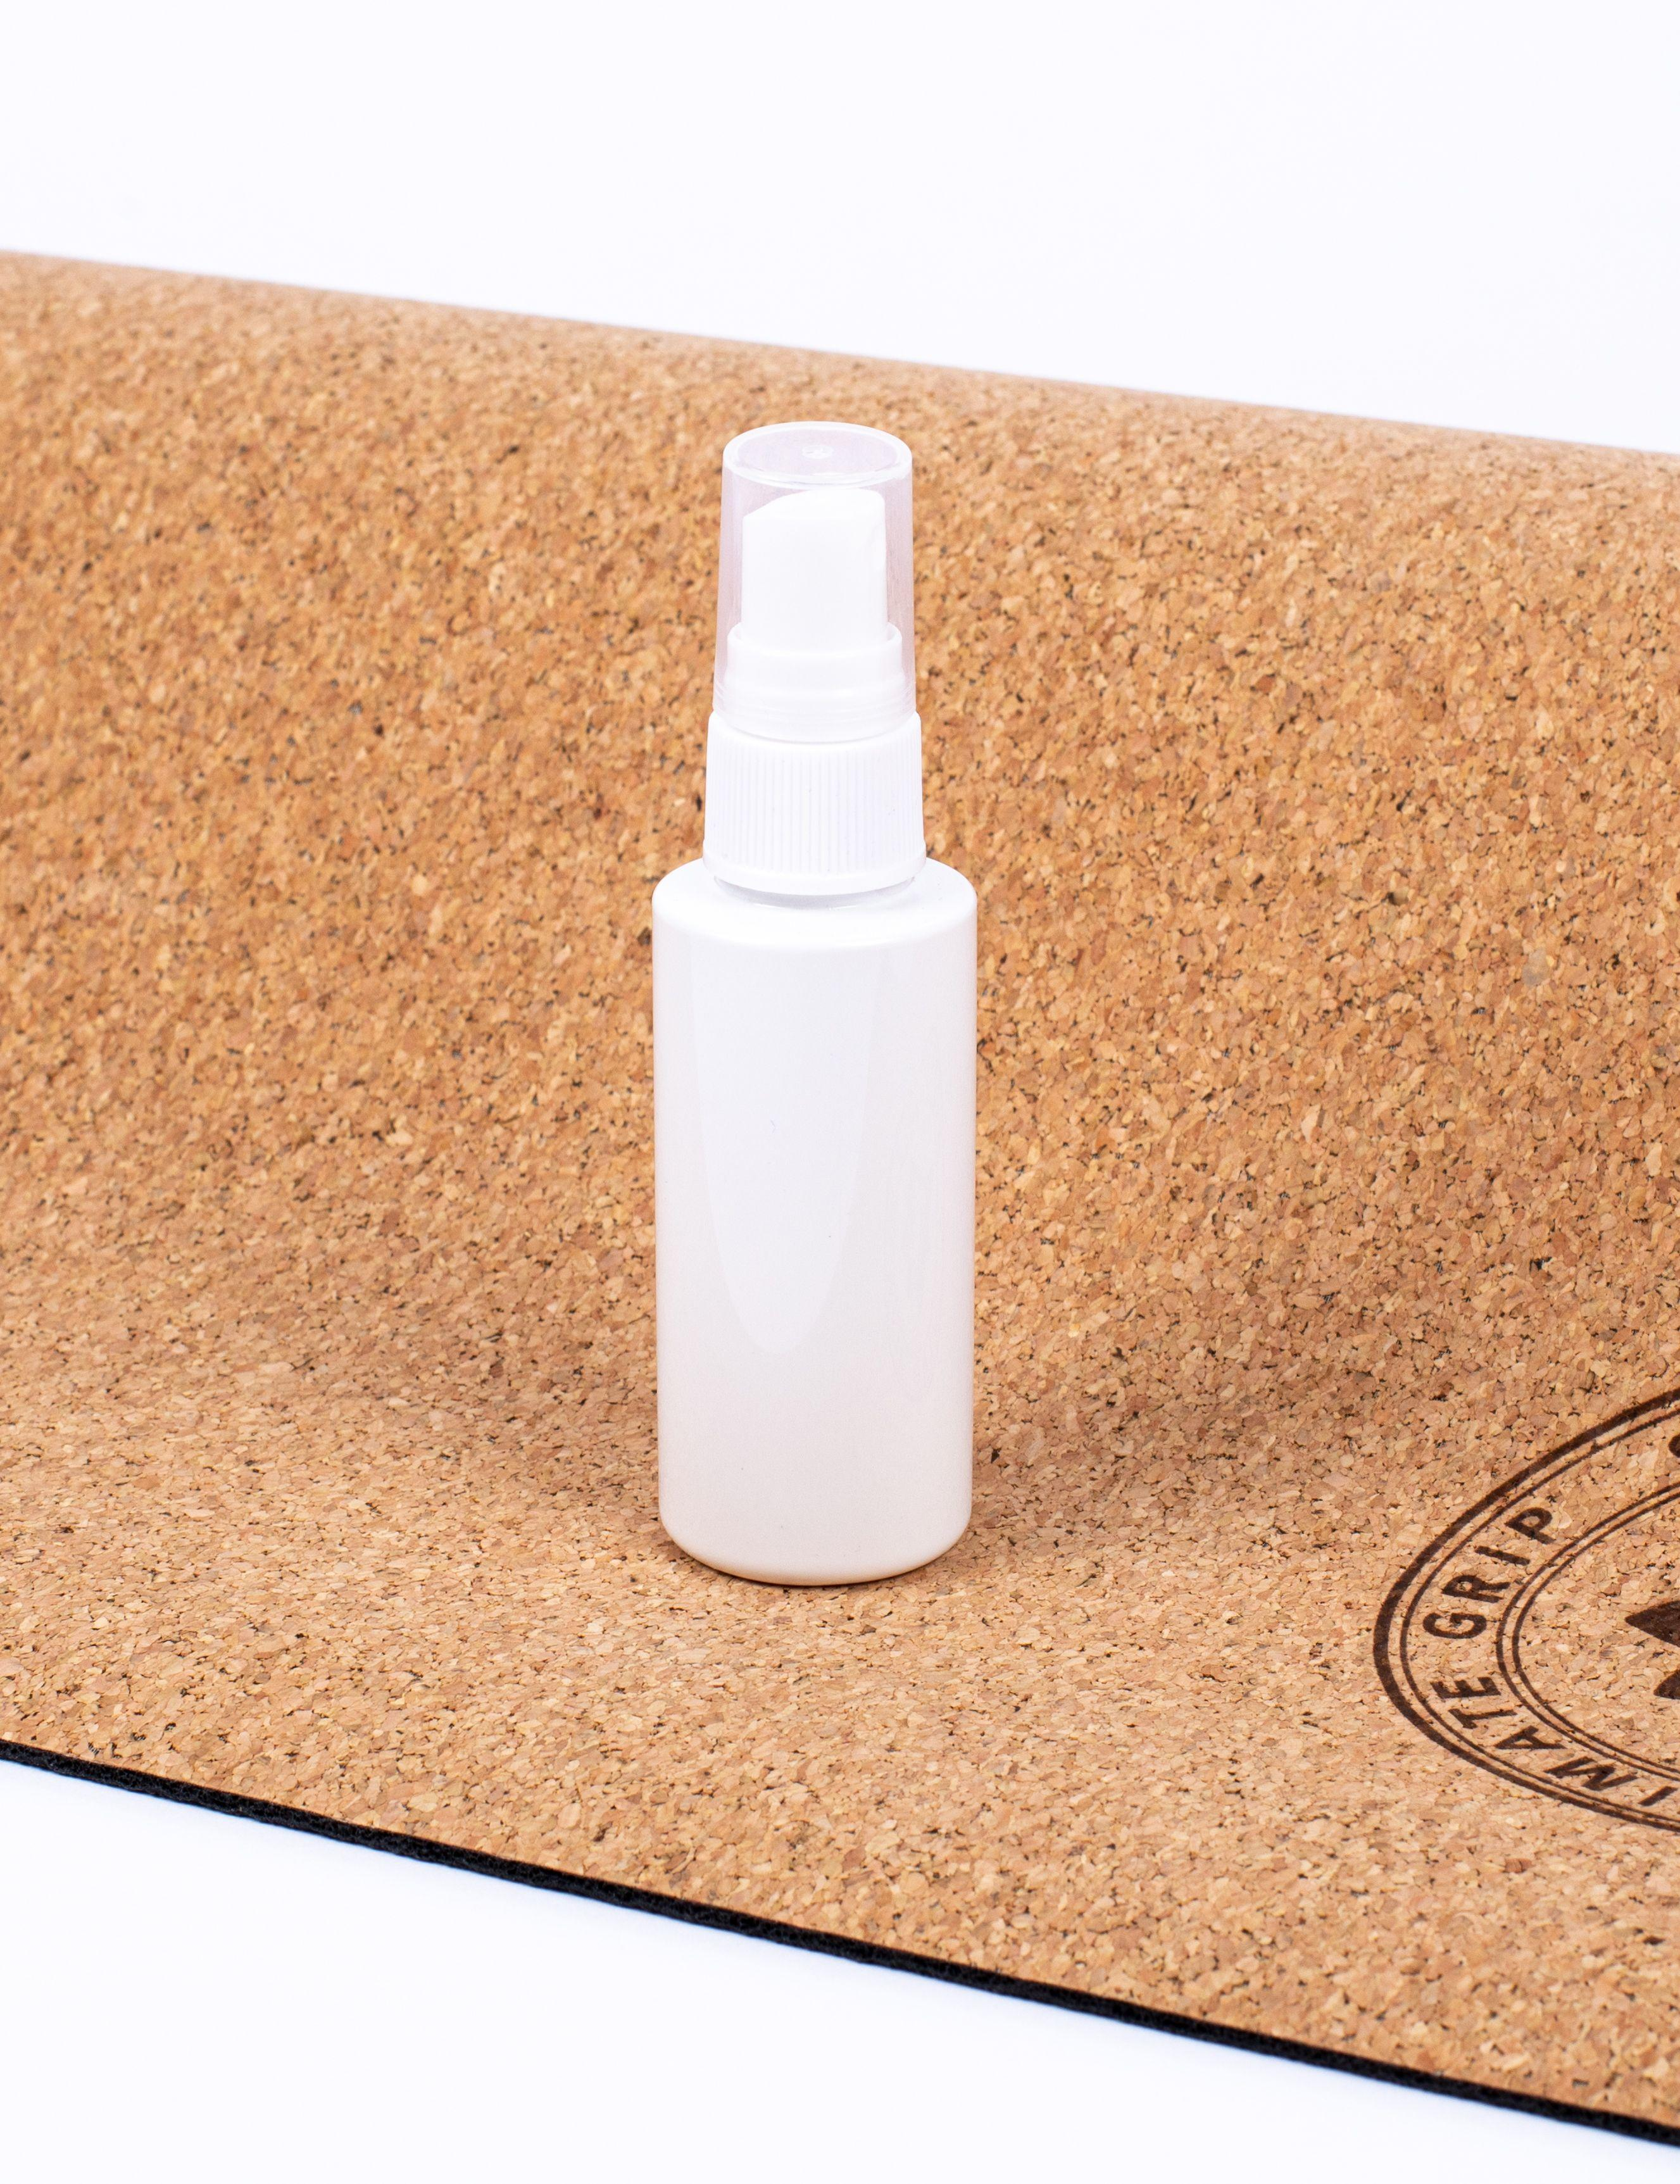 Spray bottle for yoga mat grip and cleaning